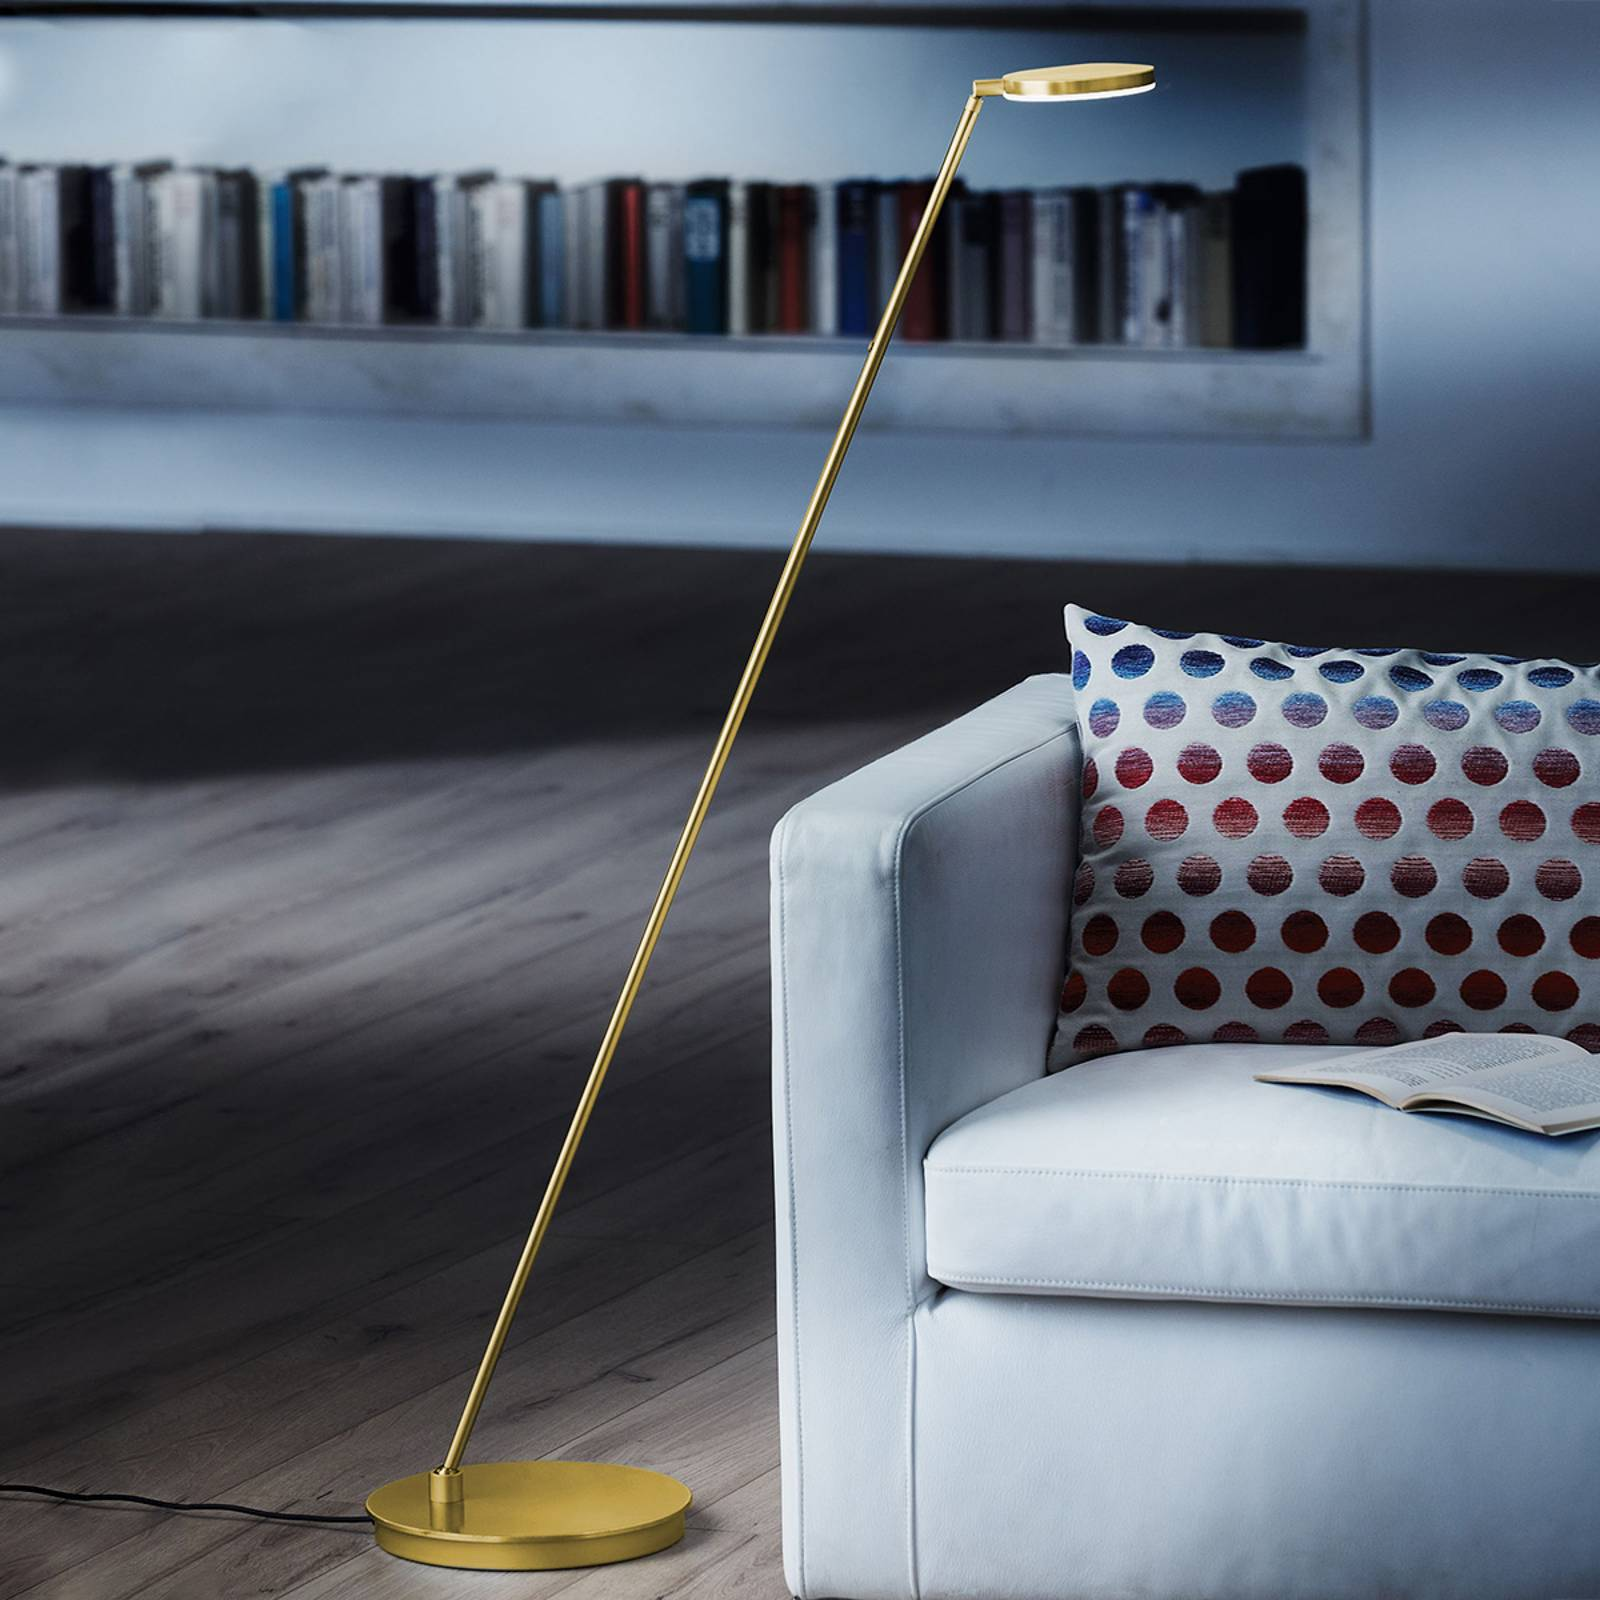 Tilting Plano S LED floor lamp brass from Holtkötter